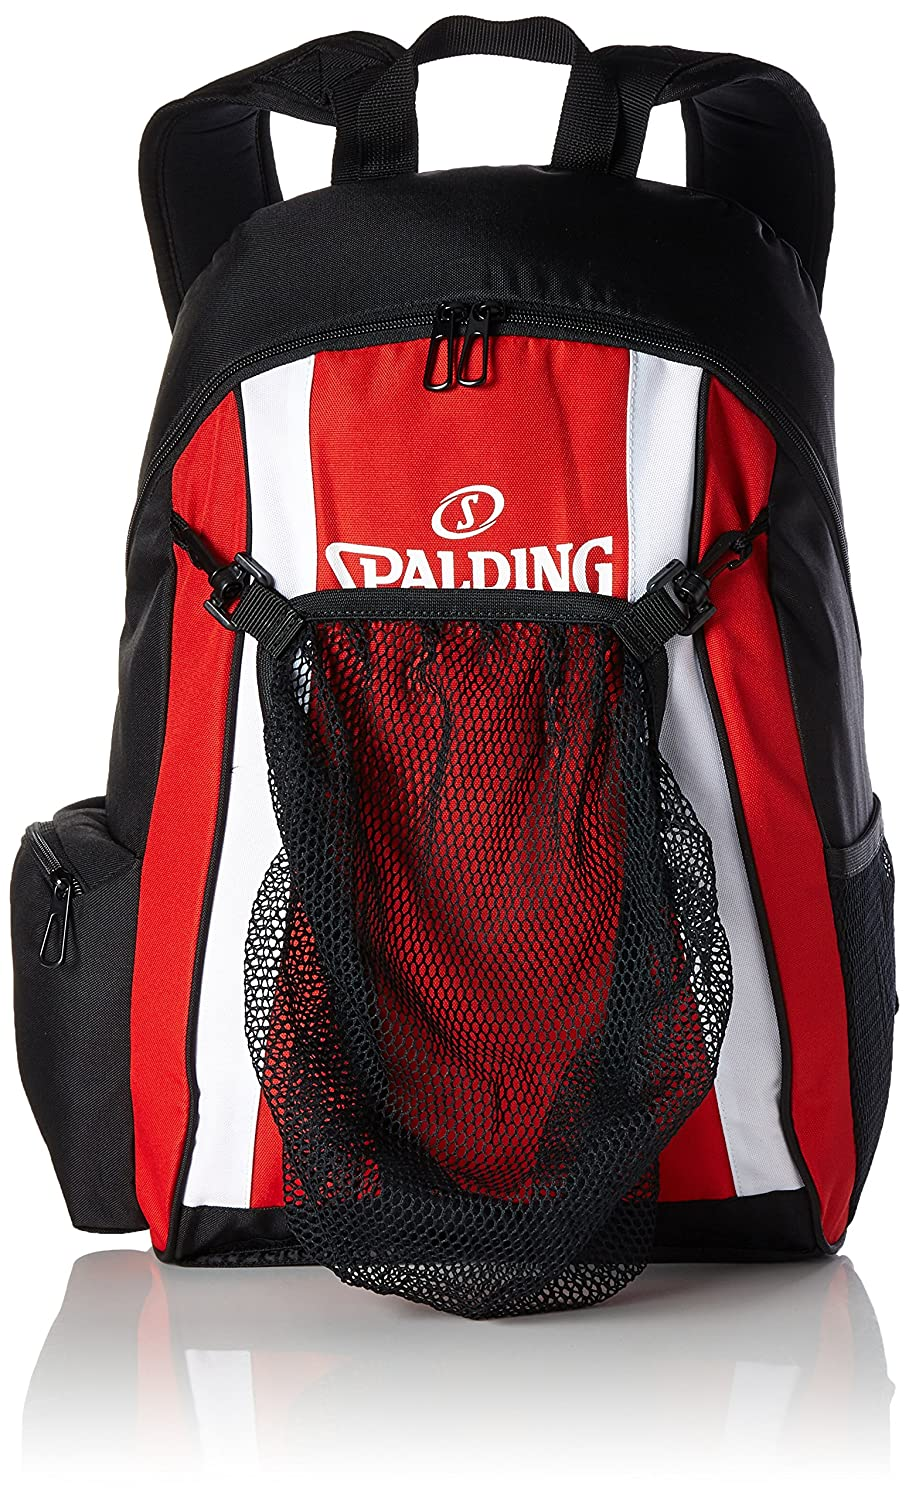 Spalding Funda Backpack, Color Rojo, Negro y Blanco, tamaño 47 x 39 x 19 cm, 35 Liter, Volumen Liters 35.0 300453202